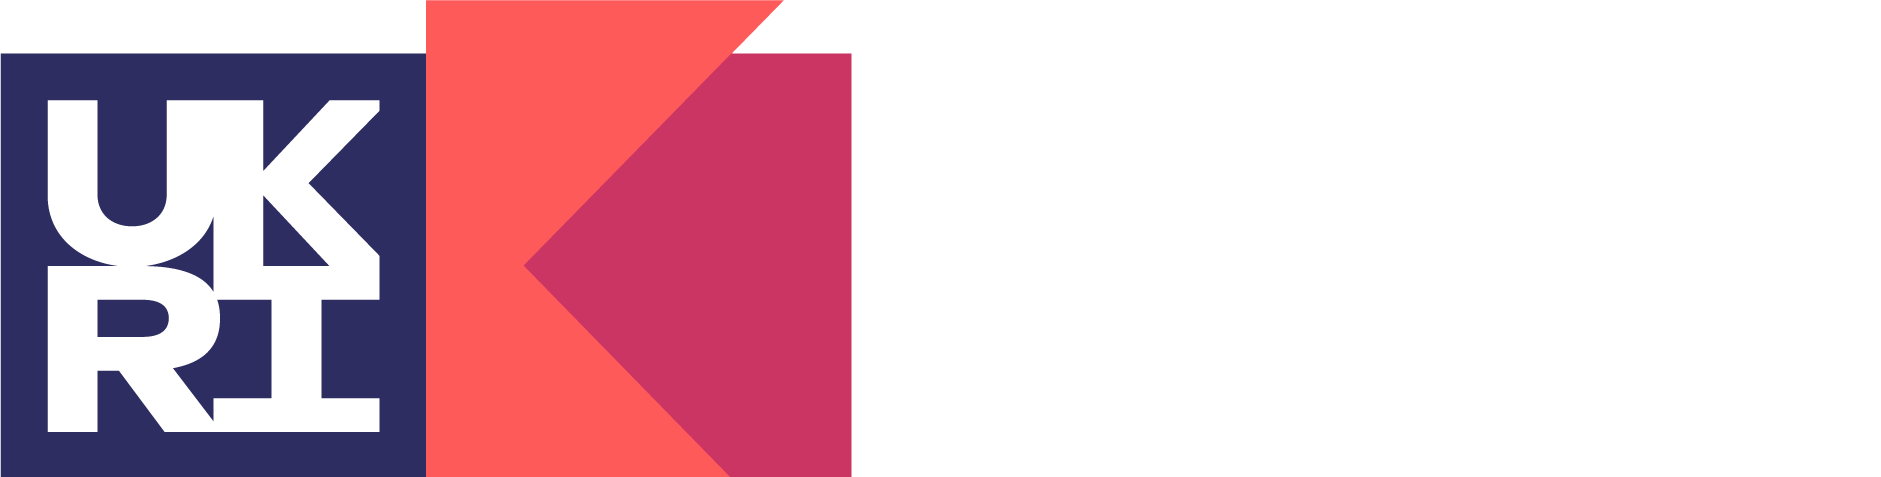 E.S.R.C Economic and Social Research Council